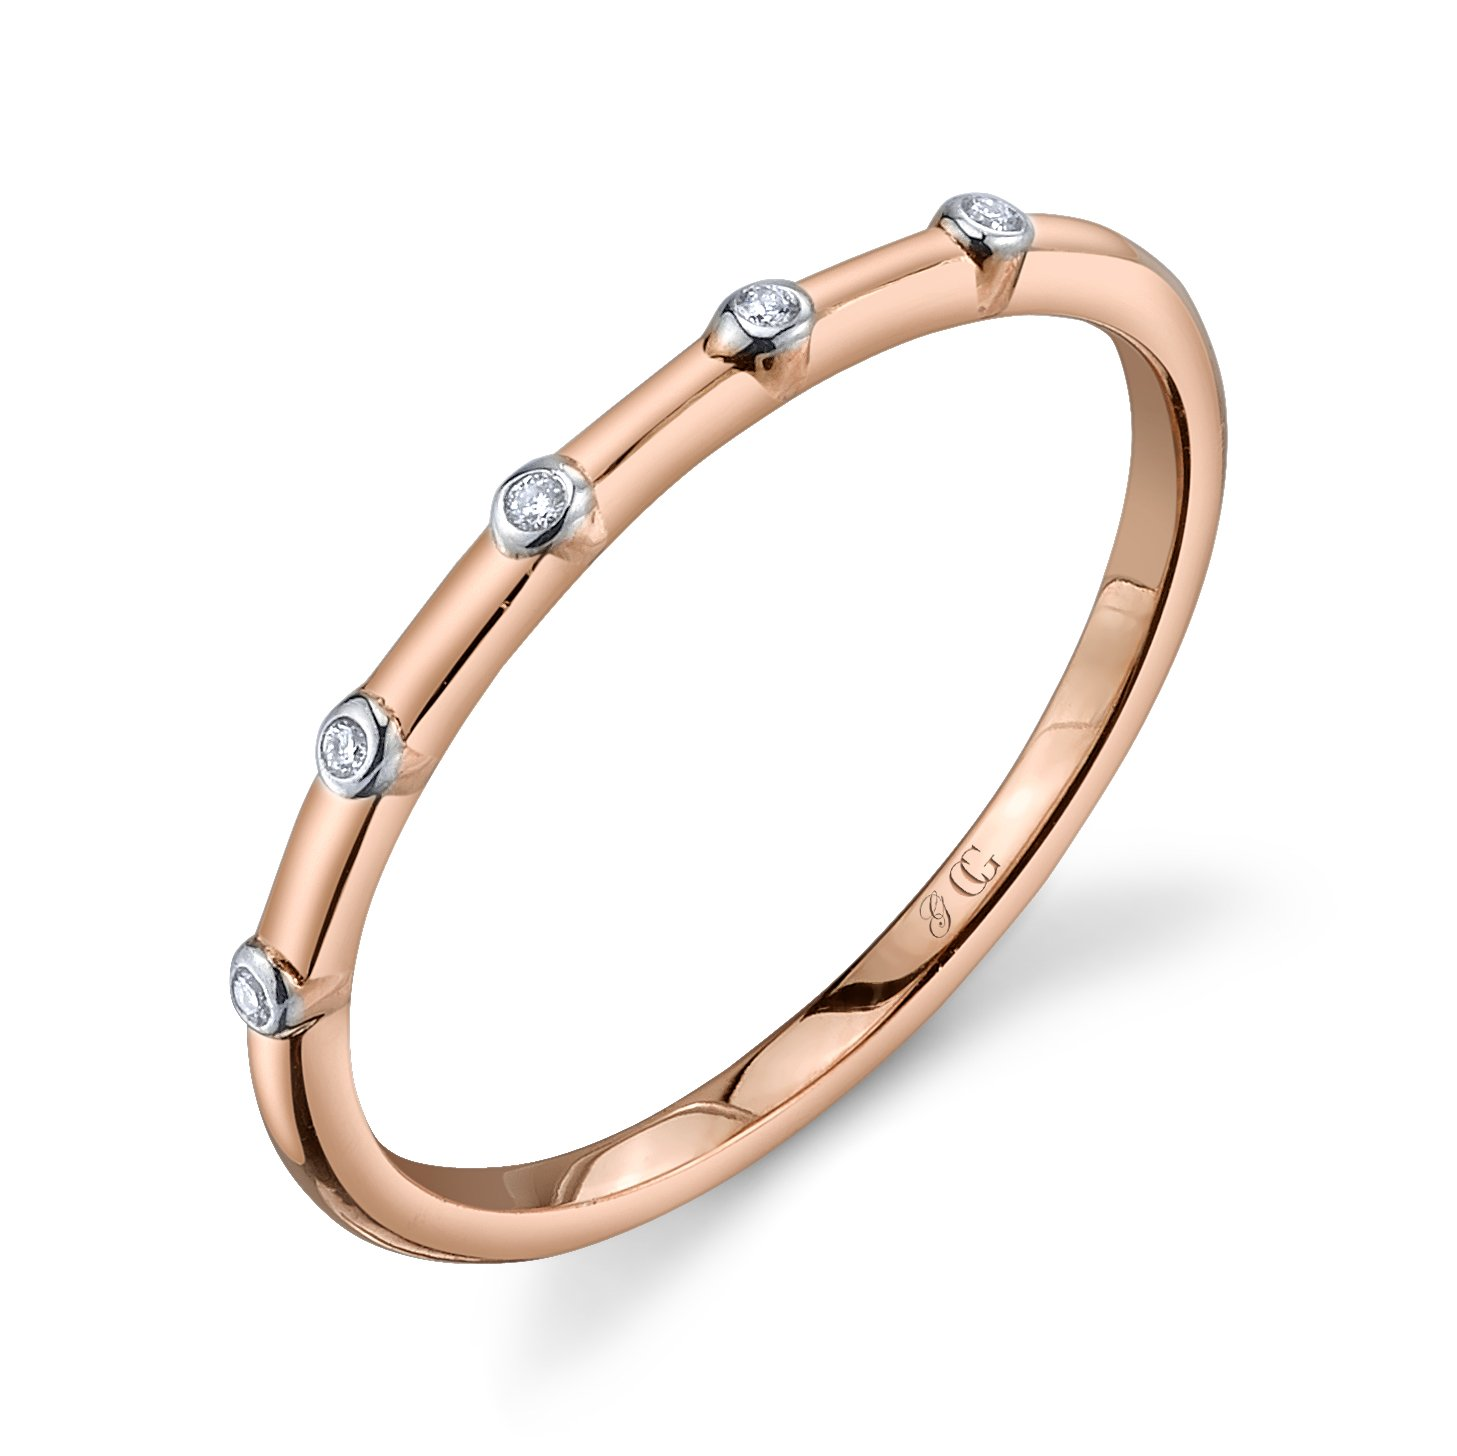 CHARLIZE GADBOIS Sterling Silver Diamond Ring, Rose Gold Plated (0.025 cttw, I1-I2 Clarity), Size 8 by Gadbois Jewelry (Image #1)